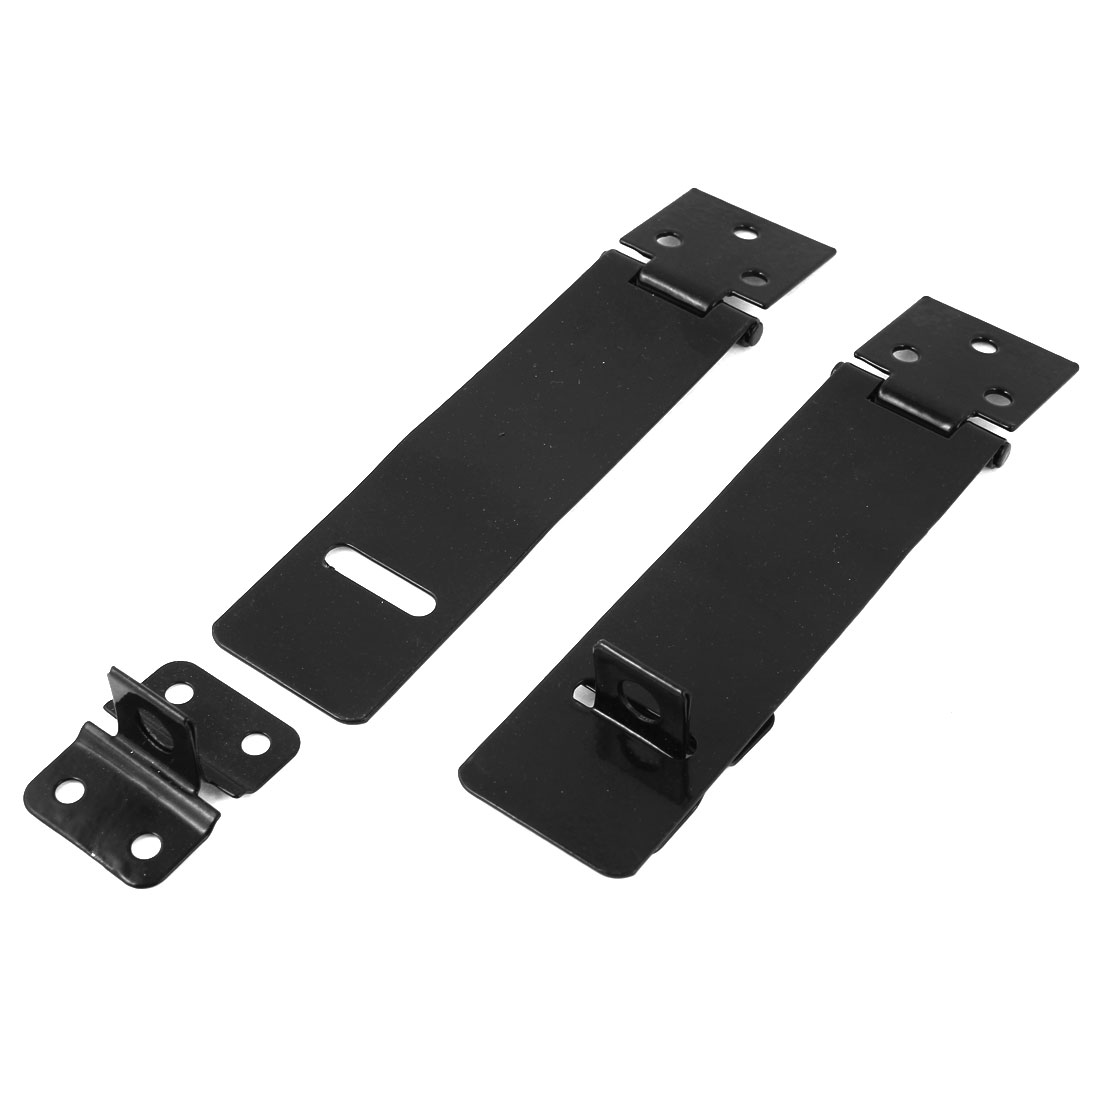 Black Metal Rectangle Gates Door Mate Latch Hasp Staple 11.8cm 2 Sets